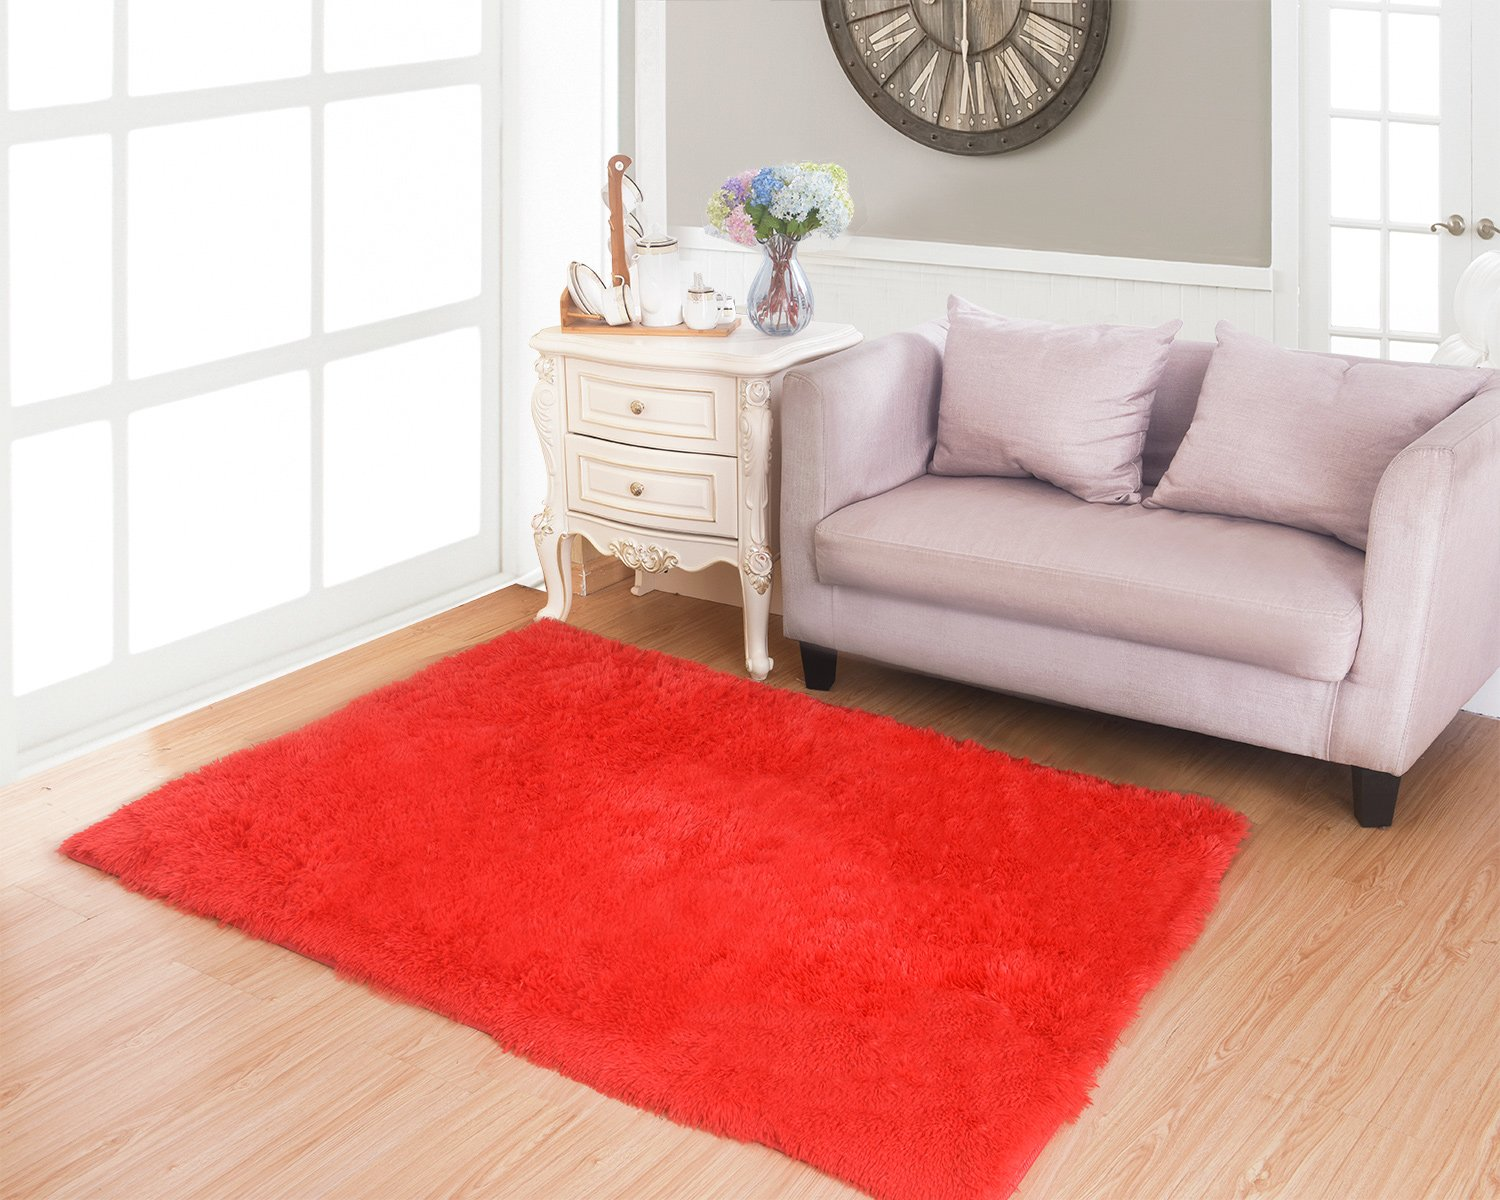 Living Room Bedroom Rugs, MBIGM Ultra Soft Modern Area Rugs Thick Shaggy Play Nursery Rug With Non-Slip Carpet Pad For Living Room Bedroom 4 Feet By 5.2 Feet, Red